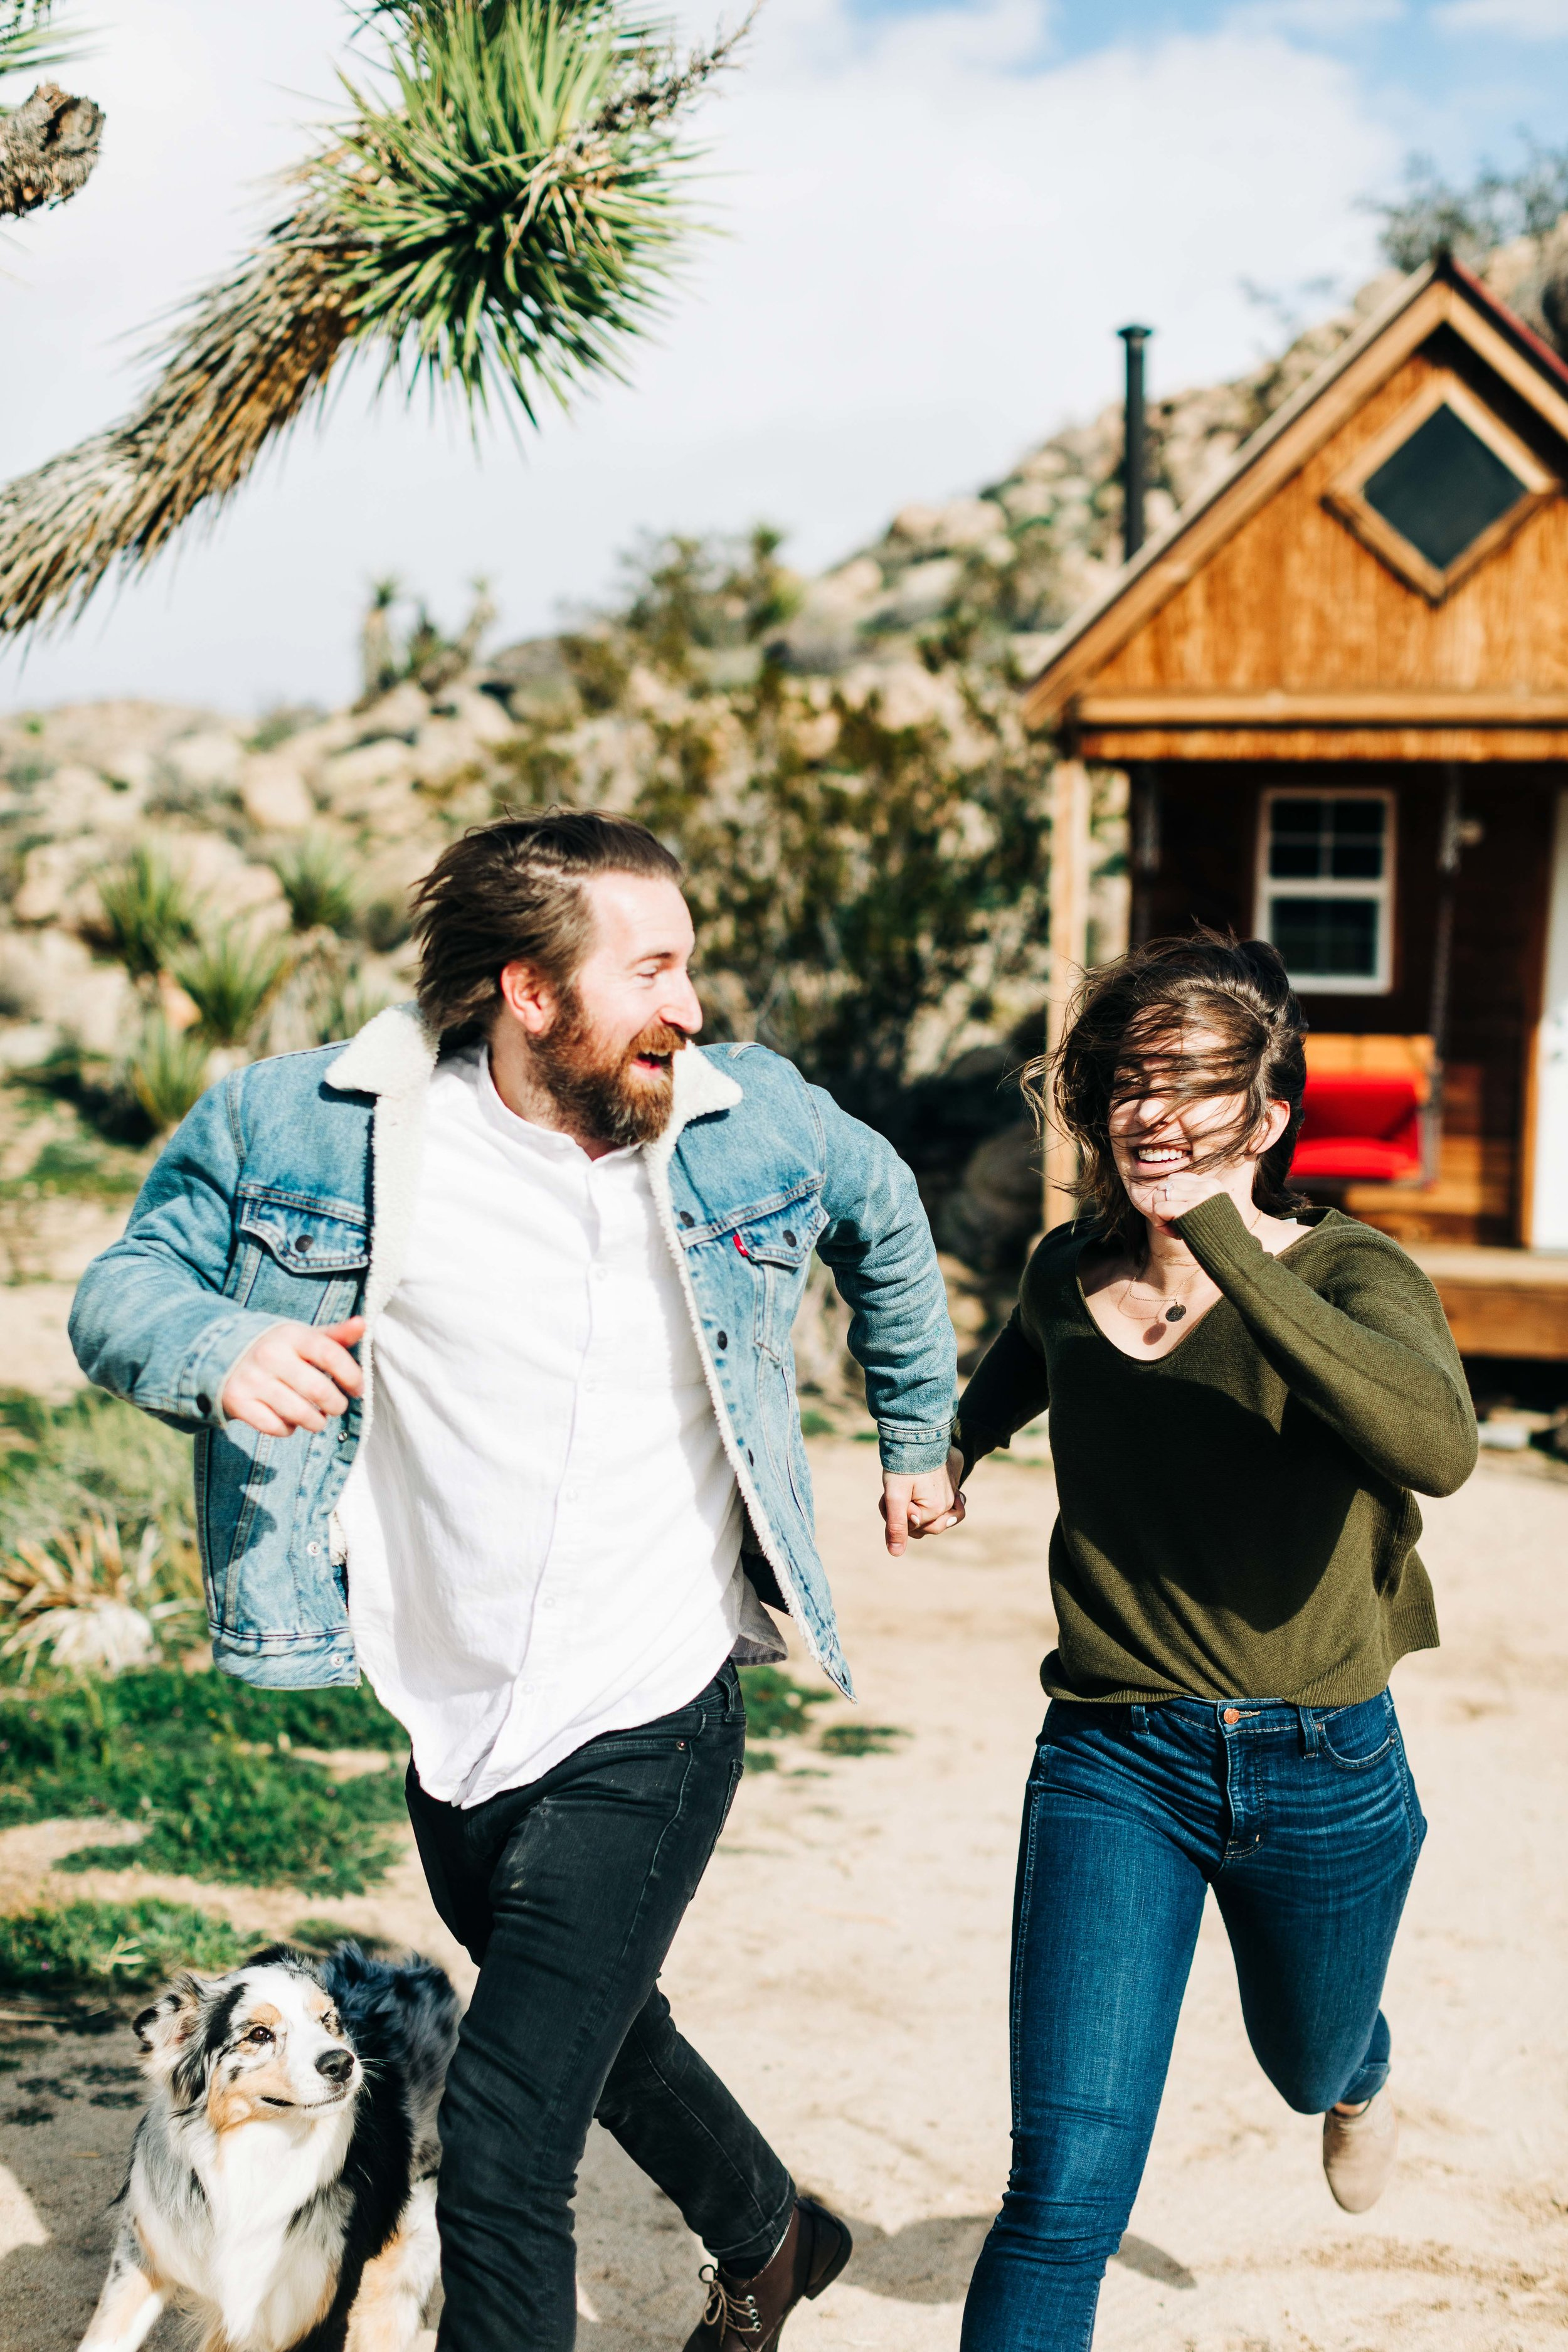 Hayley&Boomer_Joshua-Tree-Engagement-Photos_Tiny-Home_Southern-California-Wedding-Photographer_34